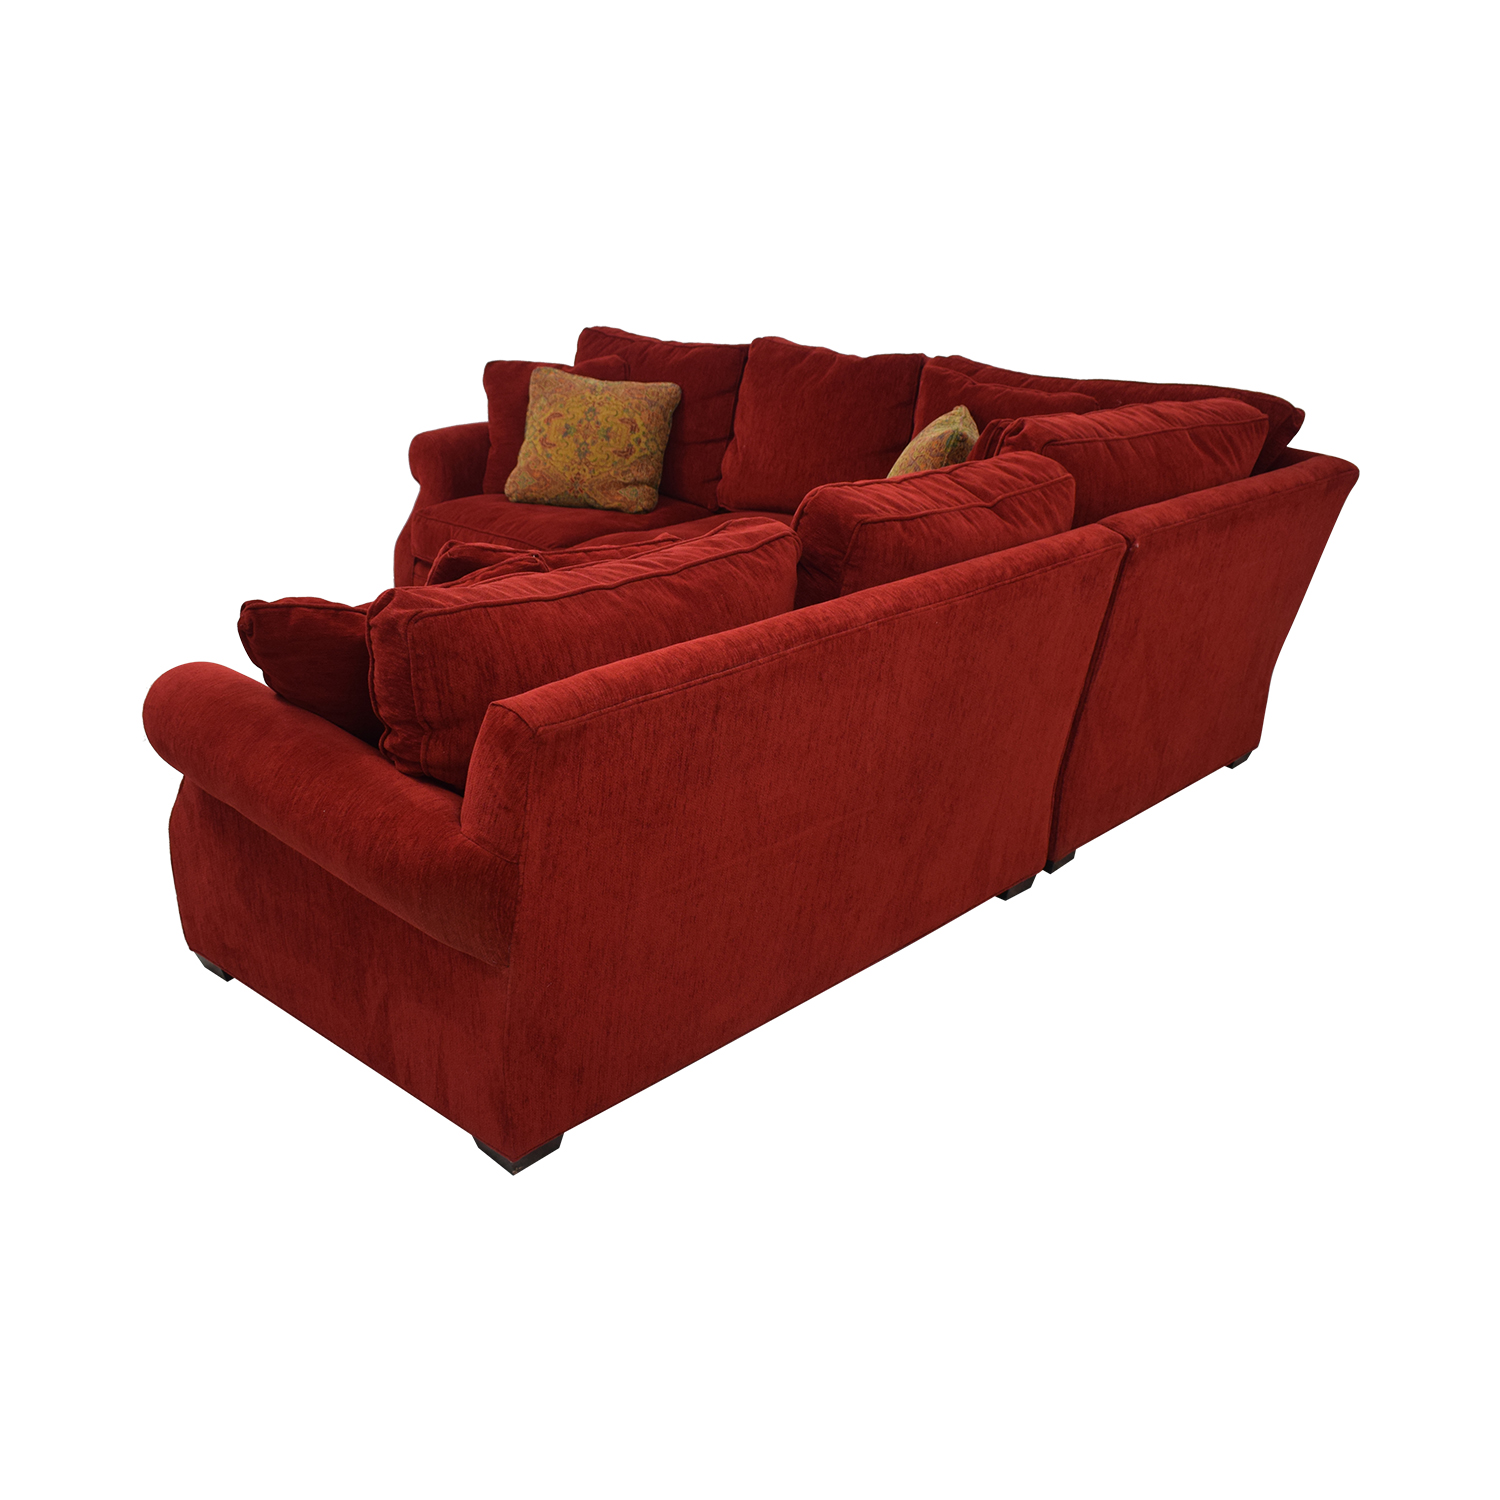 88% OFF - Retrospect Ruby Red L-Shaped Sectional / Sofas